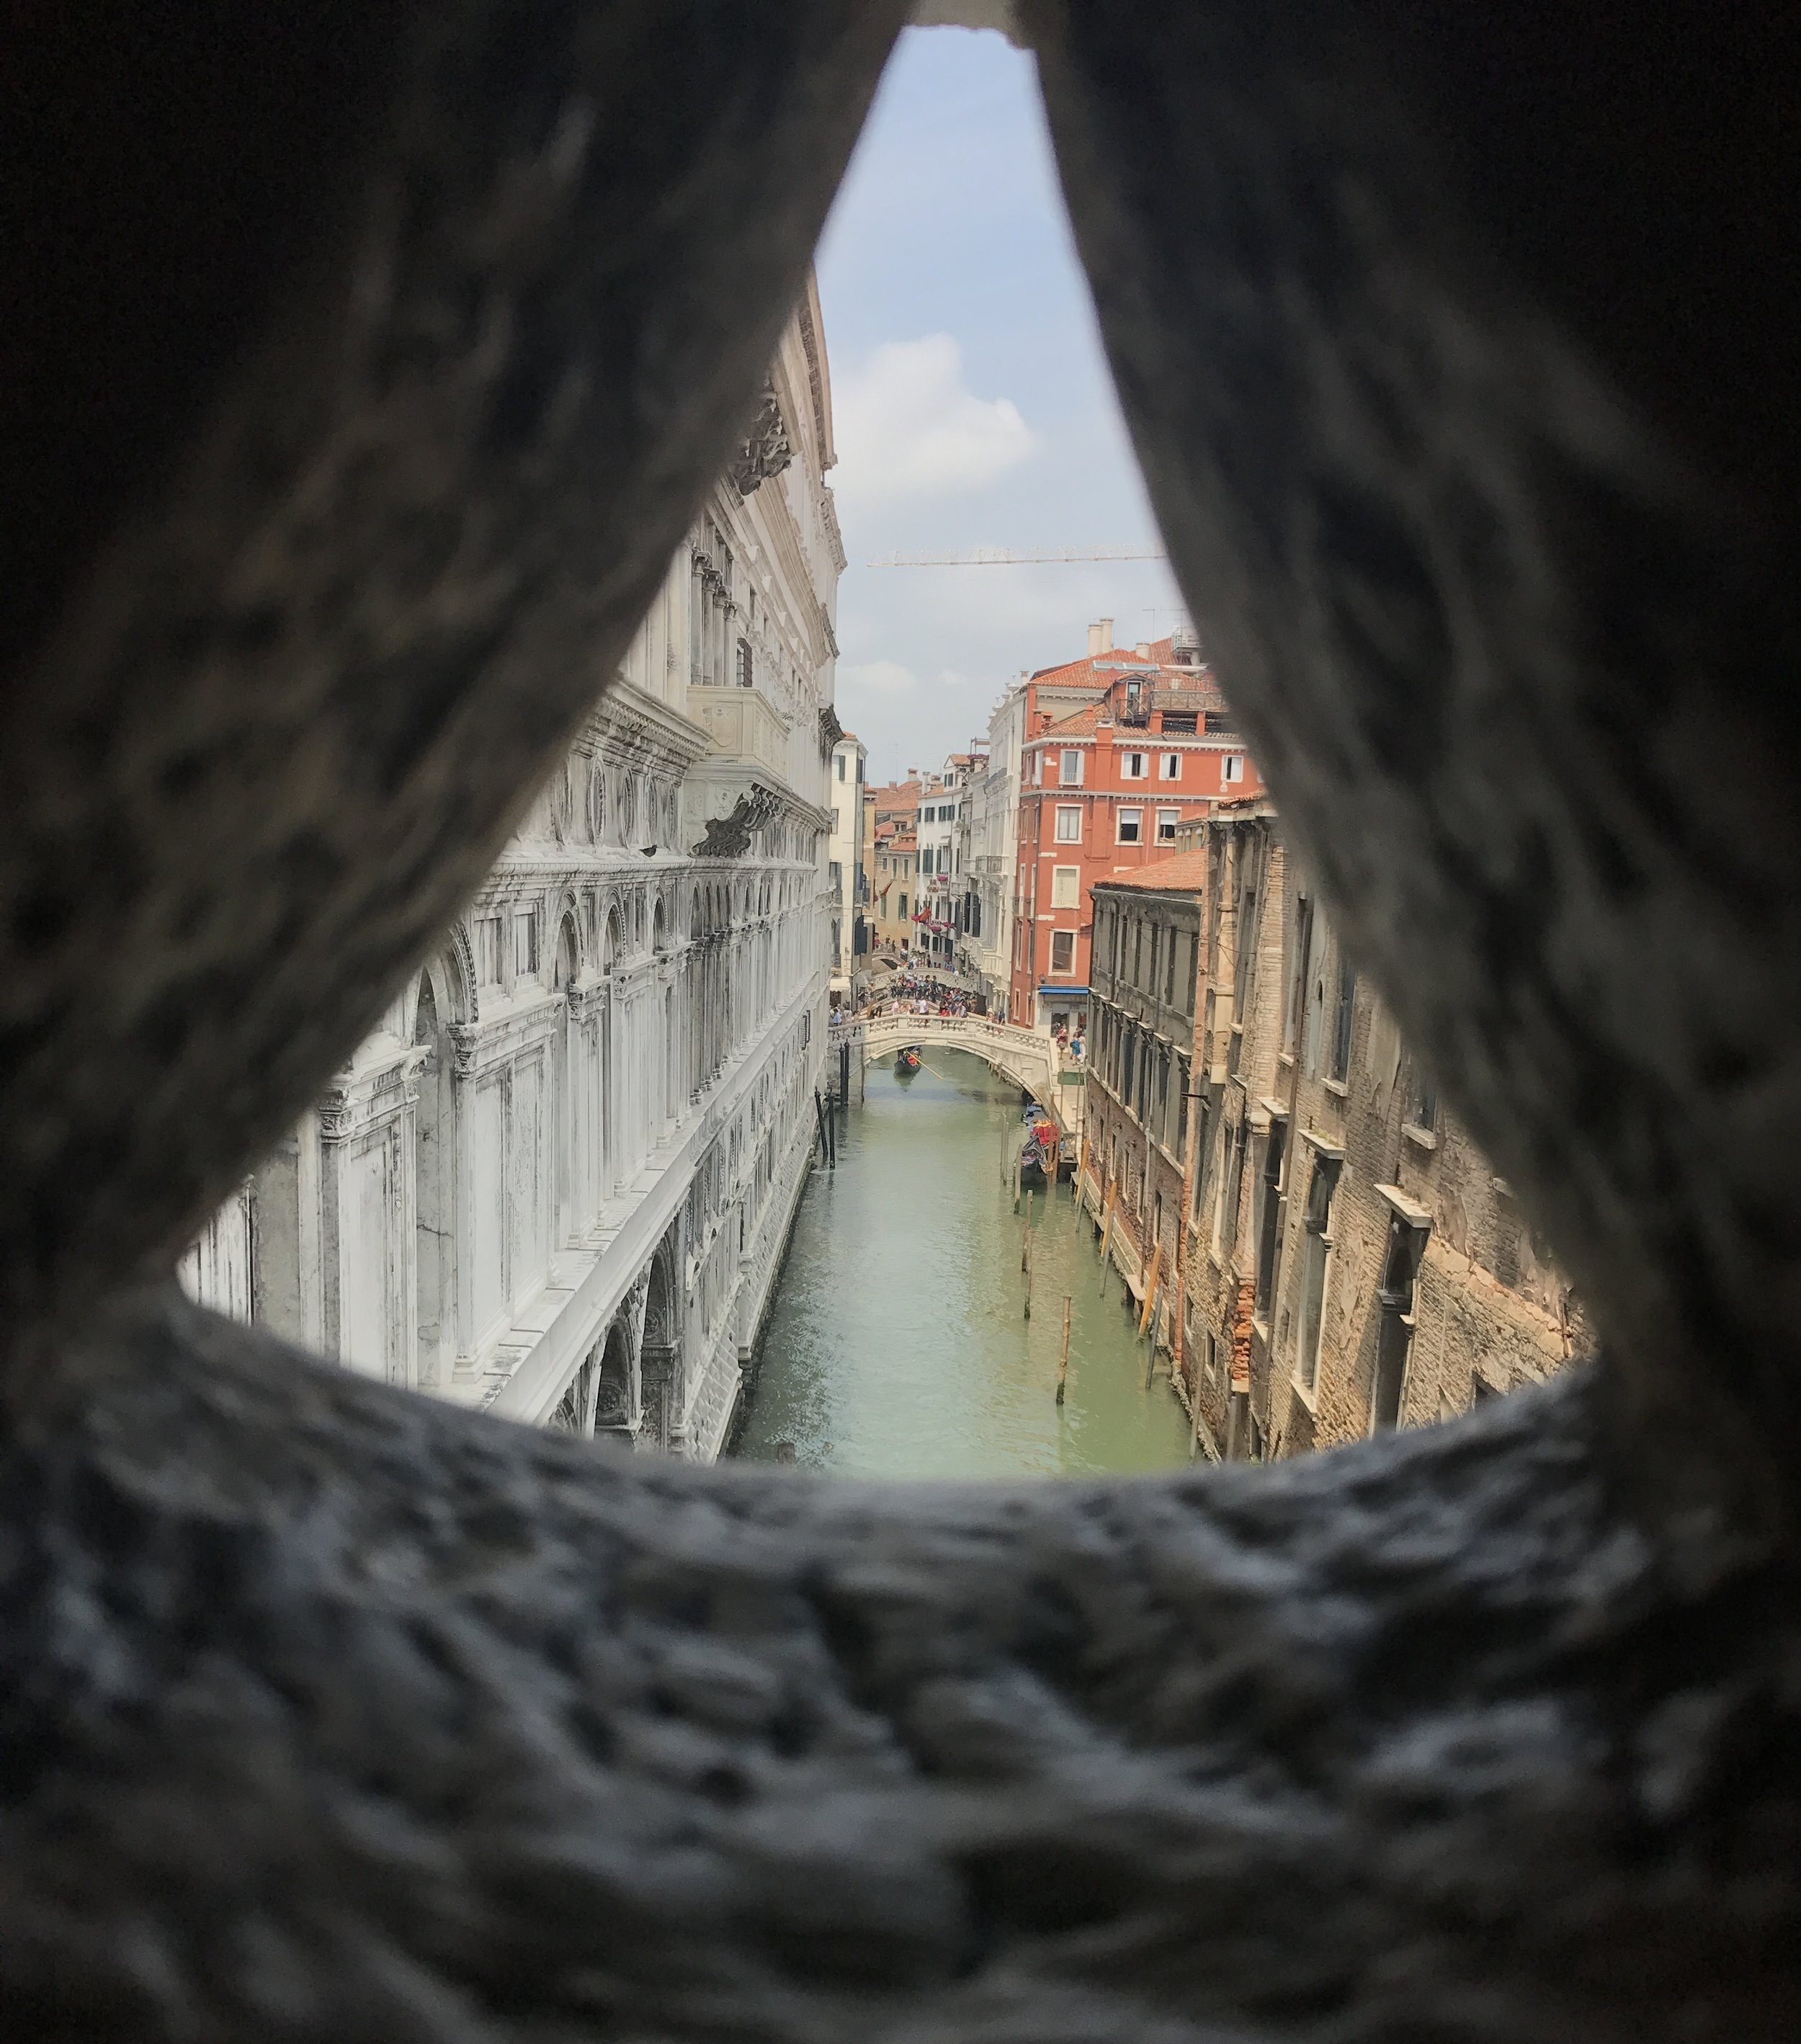 This is the view you get peeking through the designs in the Bridge of Sighs window